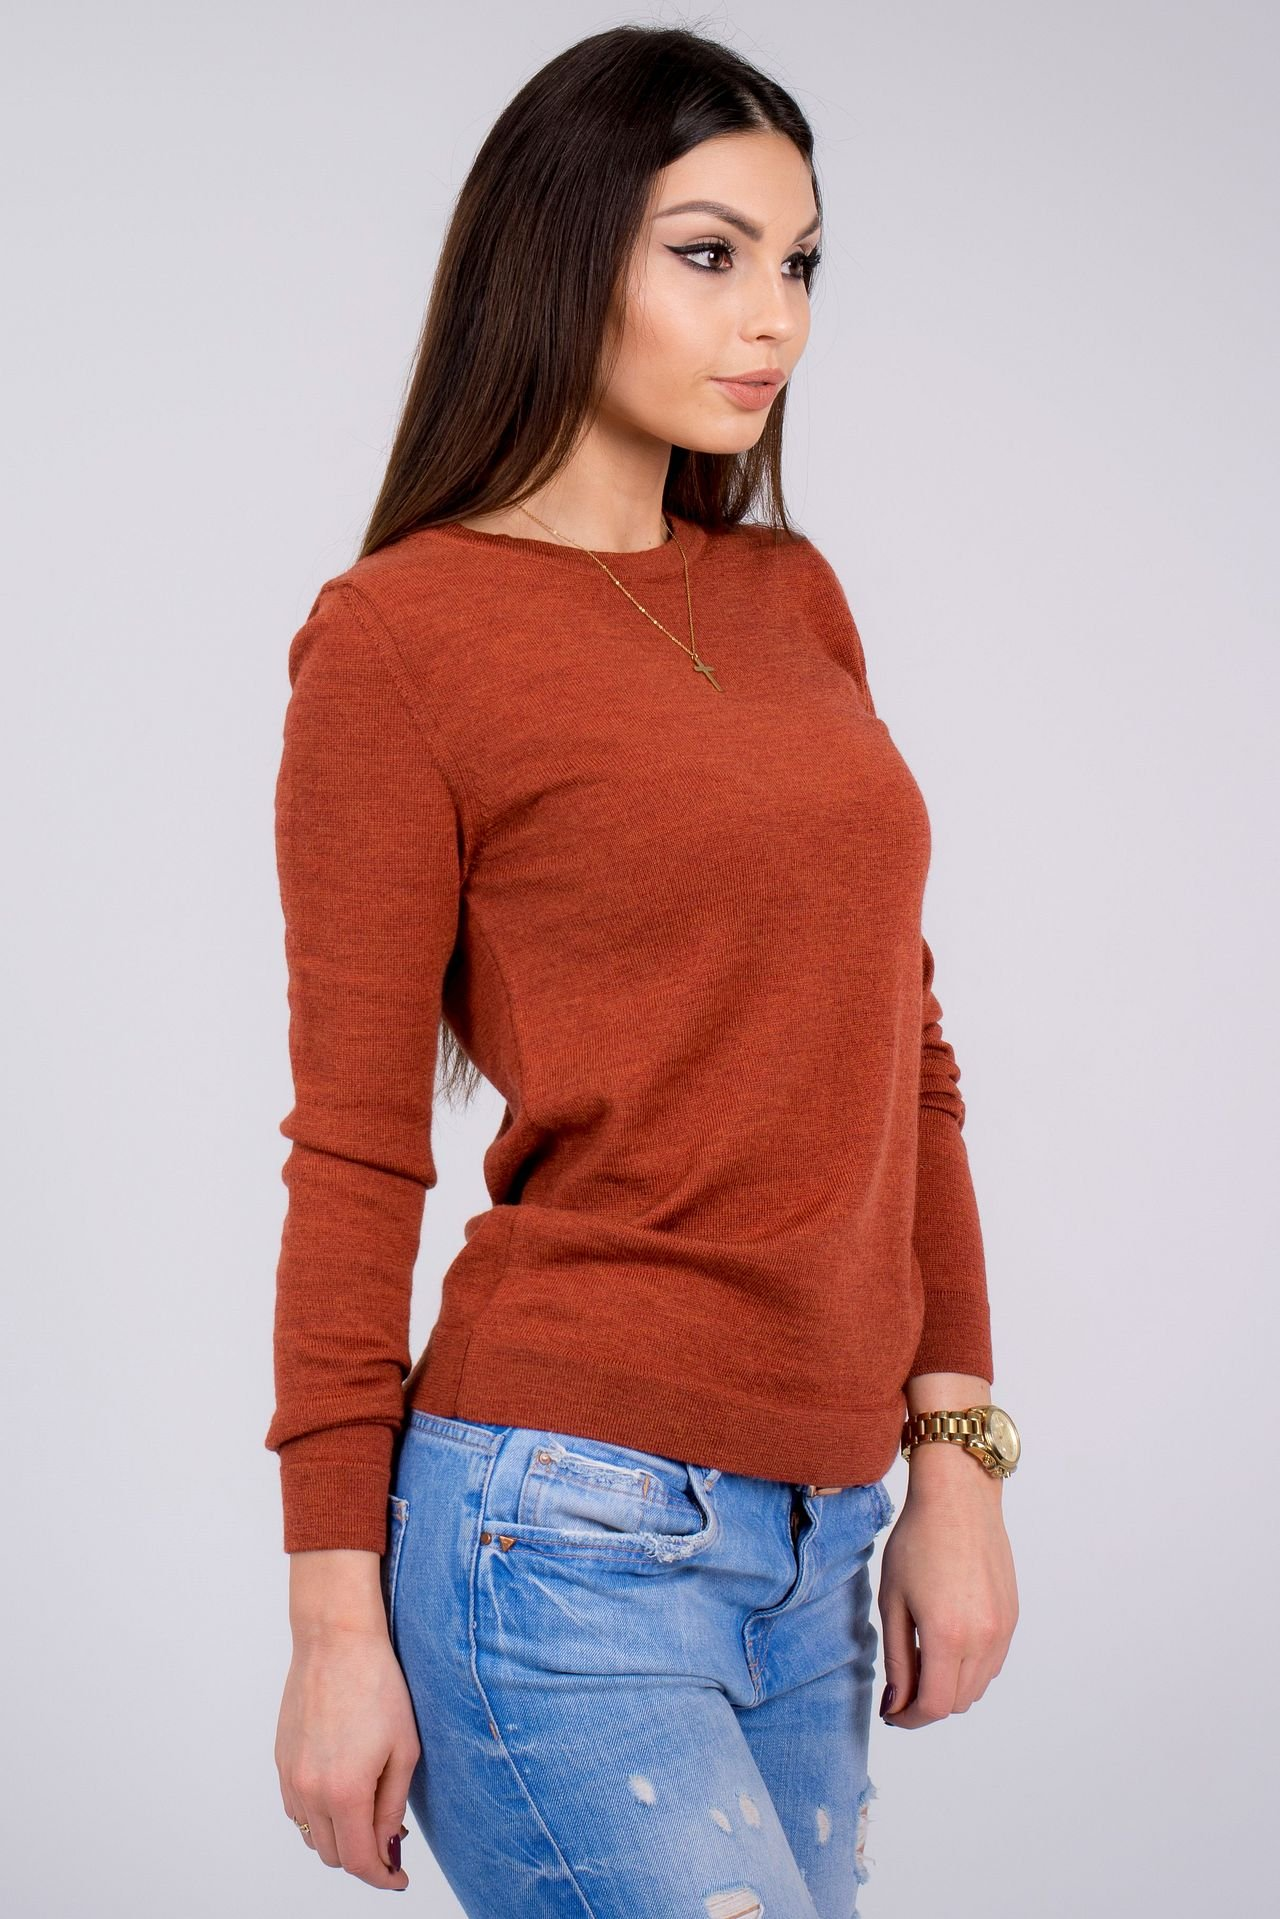 Women's Pure Merino Wool Classic Knit Top Lightweight Crew Neck Sweater Long Sleeve Pullover (X-Large, Orange) by KNITTONS (Image #3)